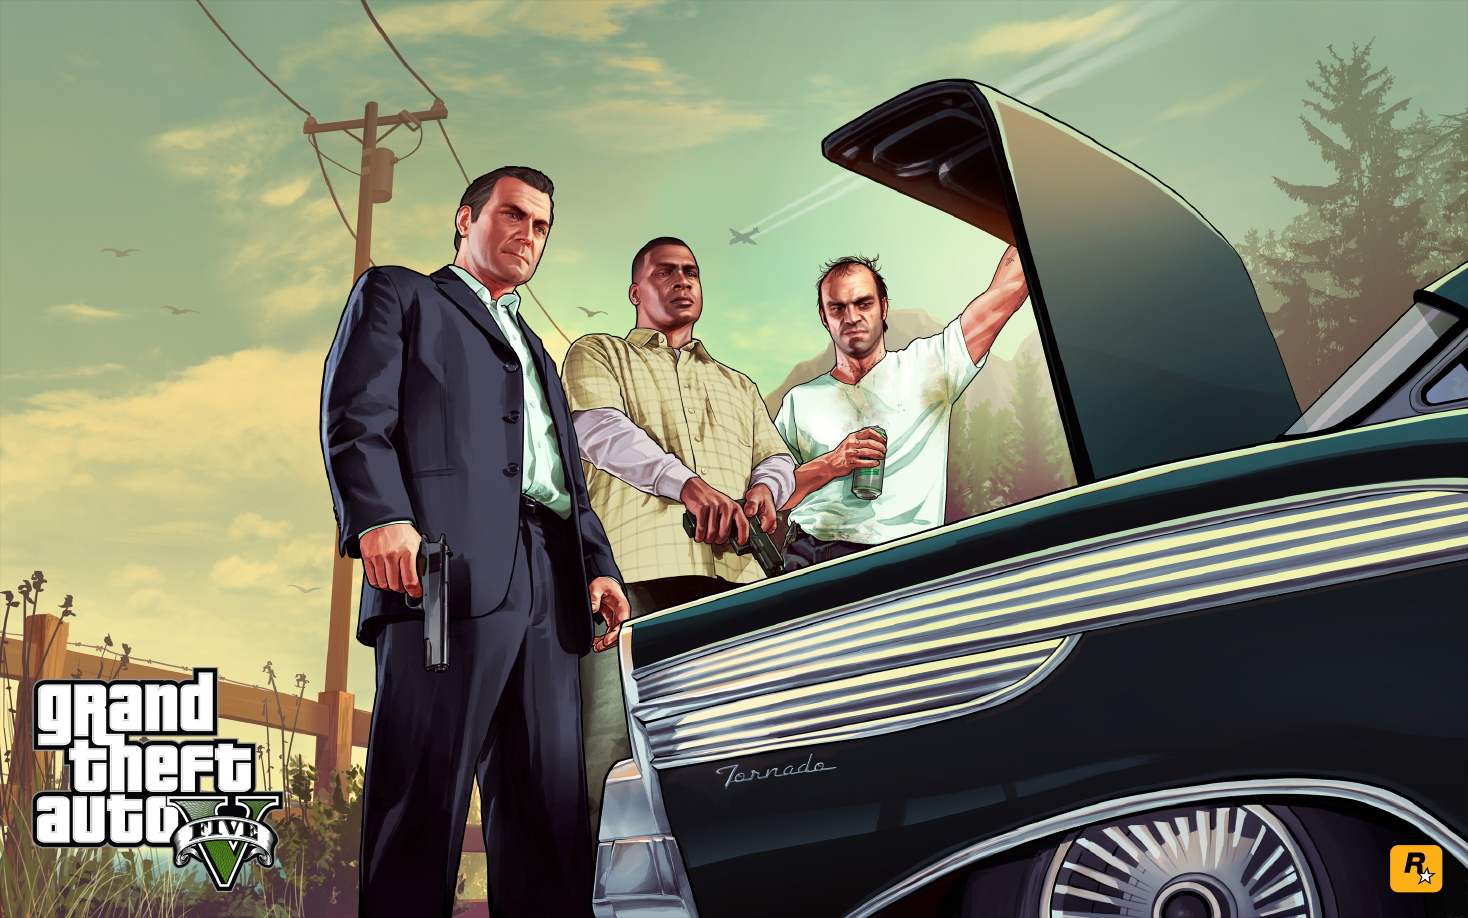 DaeTube GTA V HD Wallpaper Desktop Background Sceenshoot Game GTA 5 1468x918